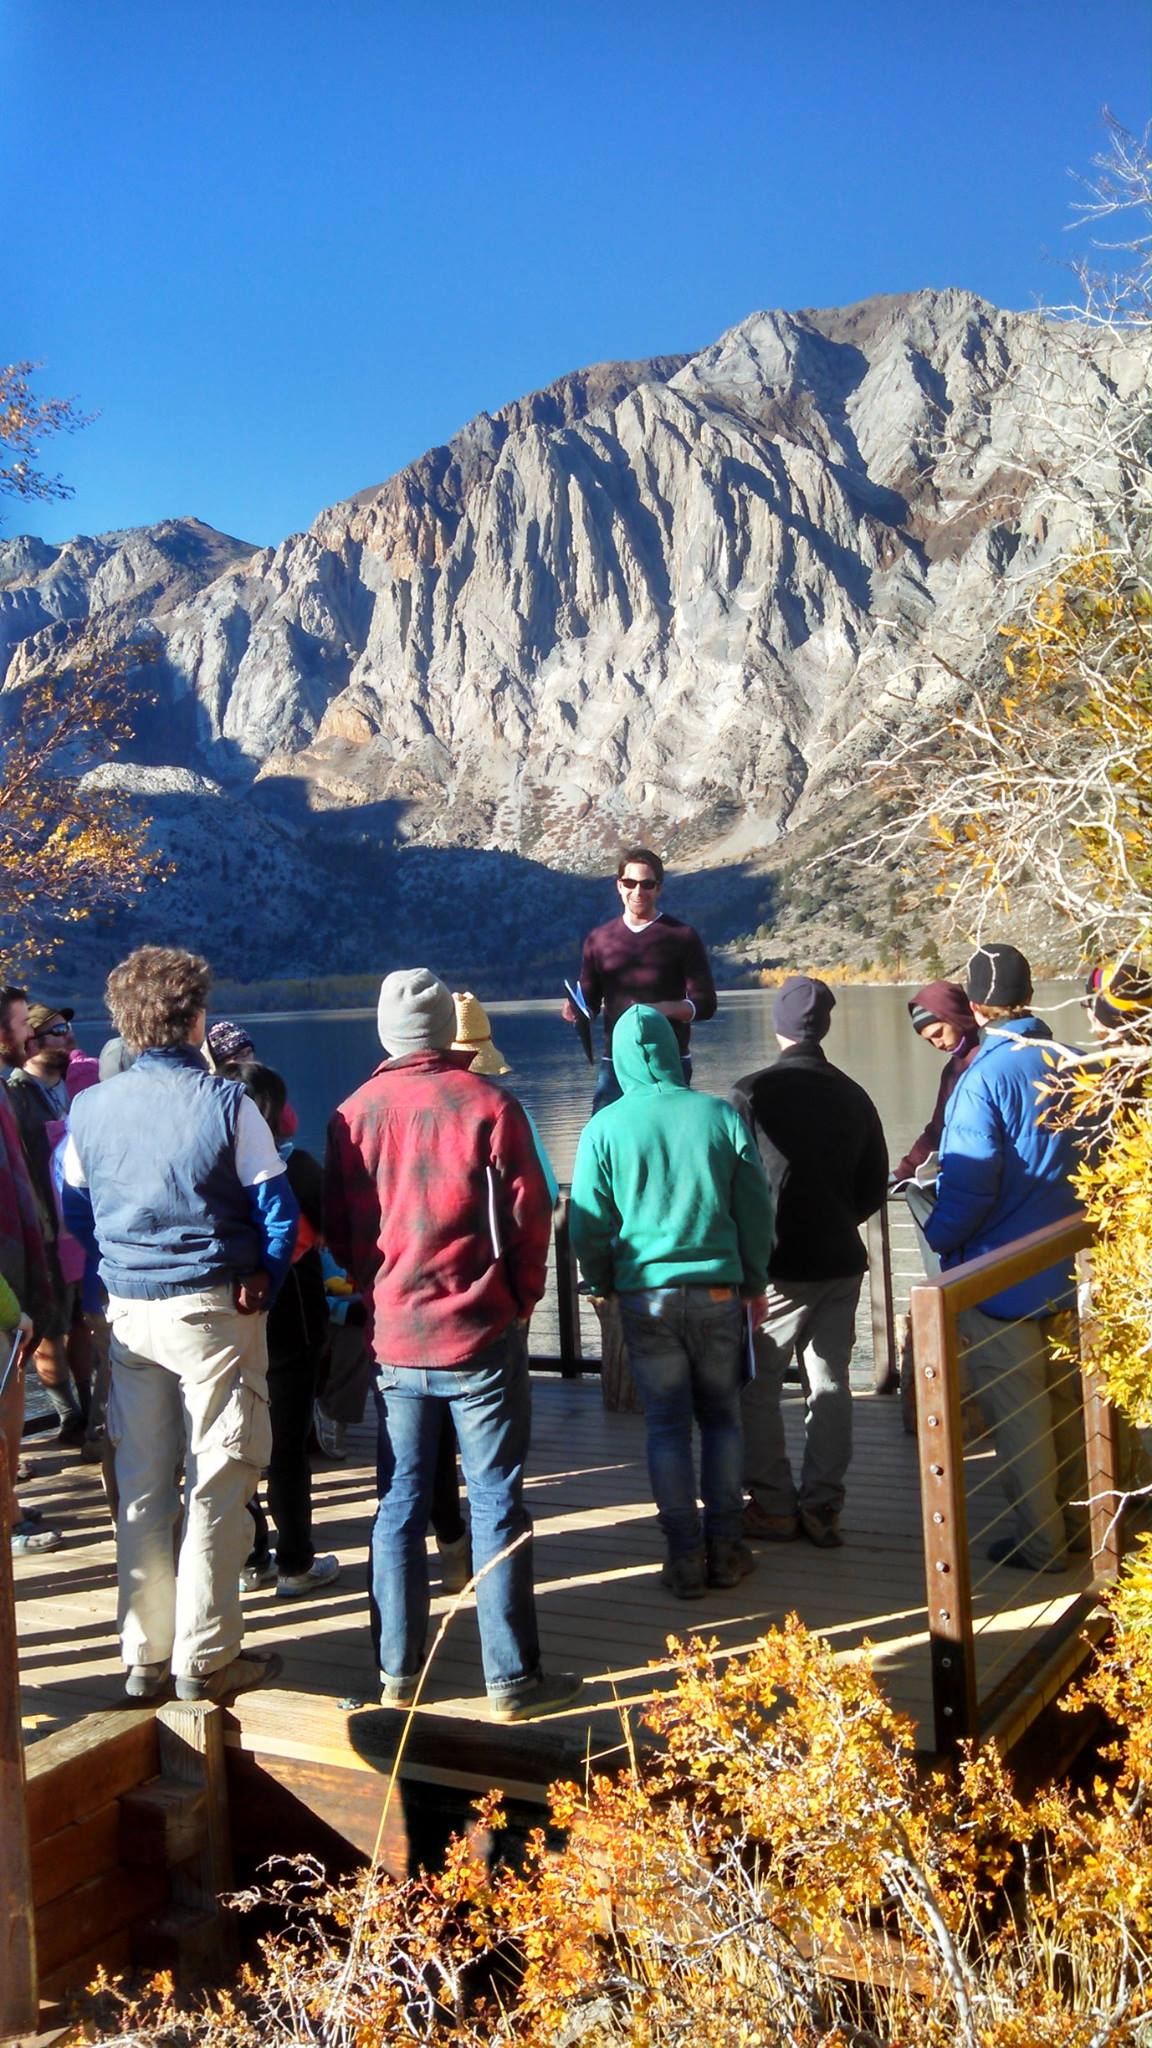 Now for my PhD, here I am presenting for a field course at Caltech on glacial moraines at Convict Lake